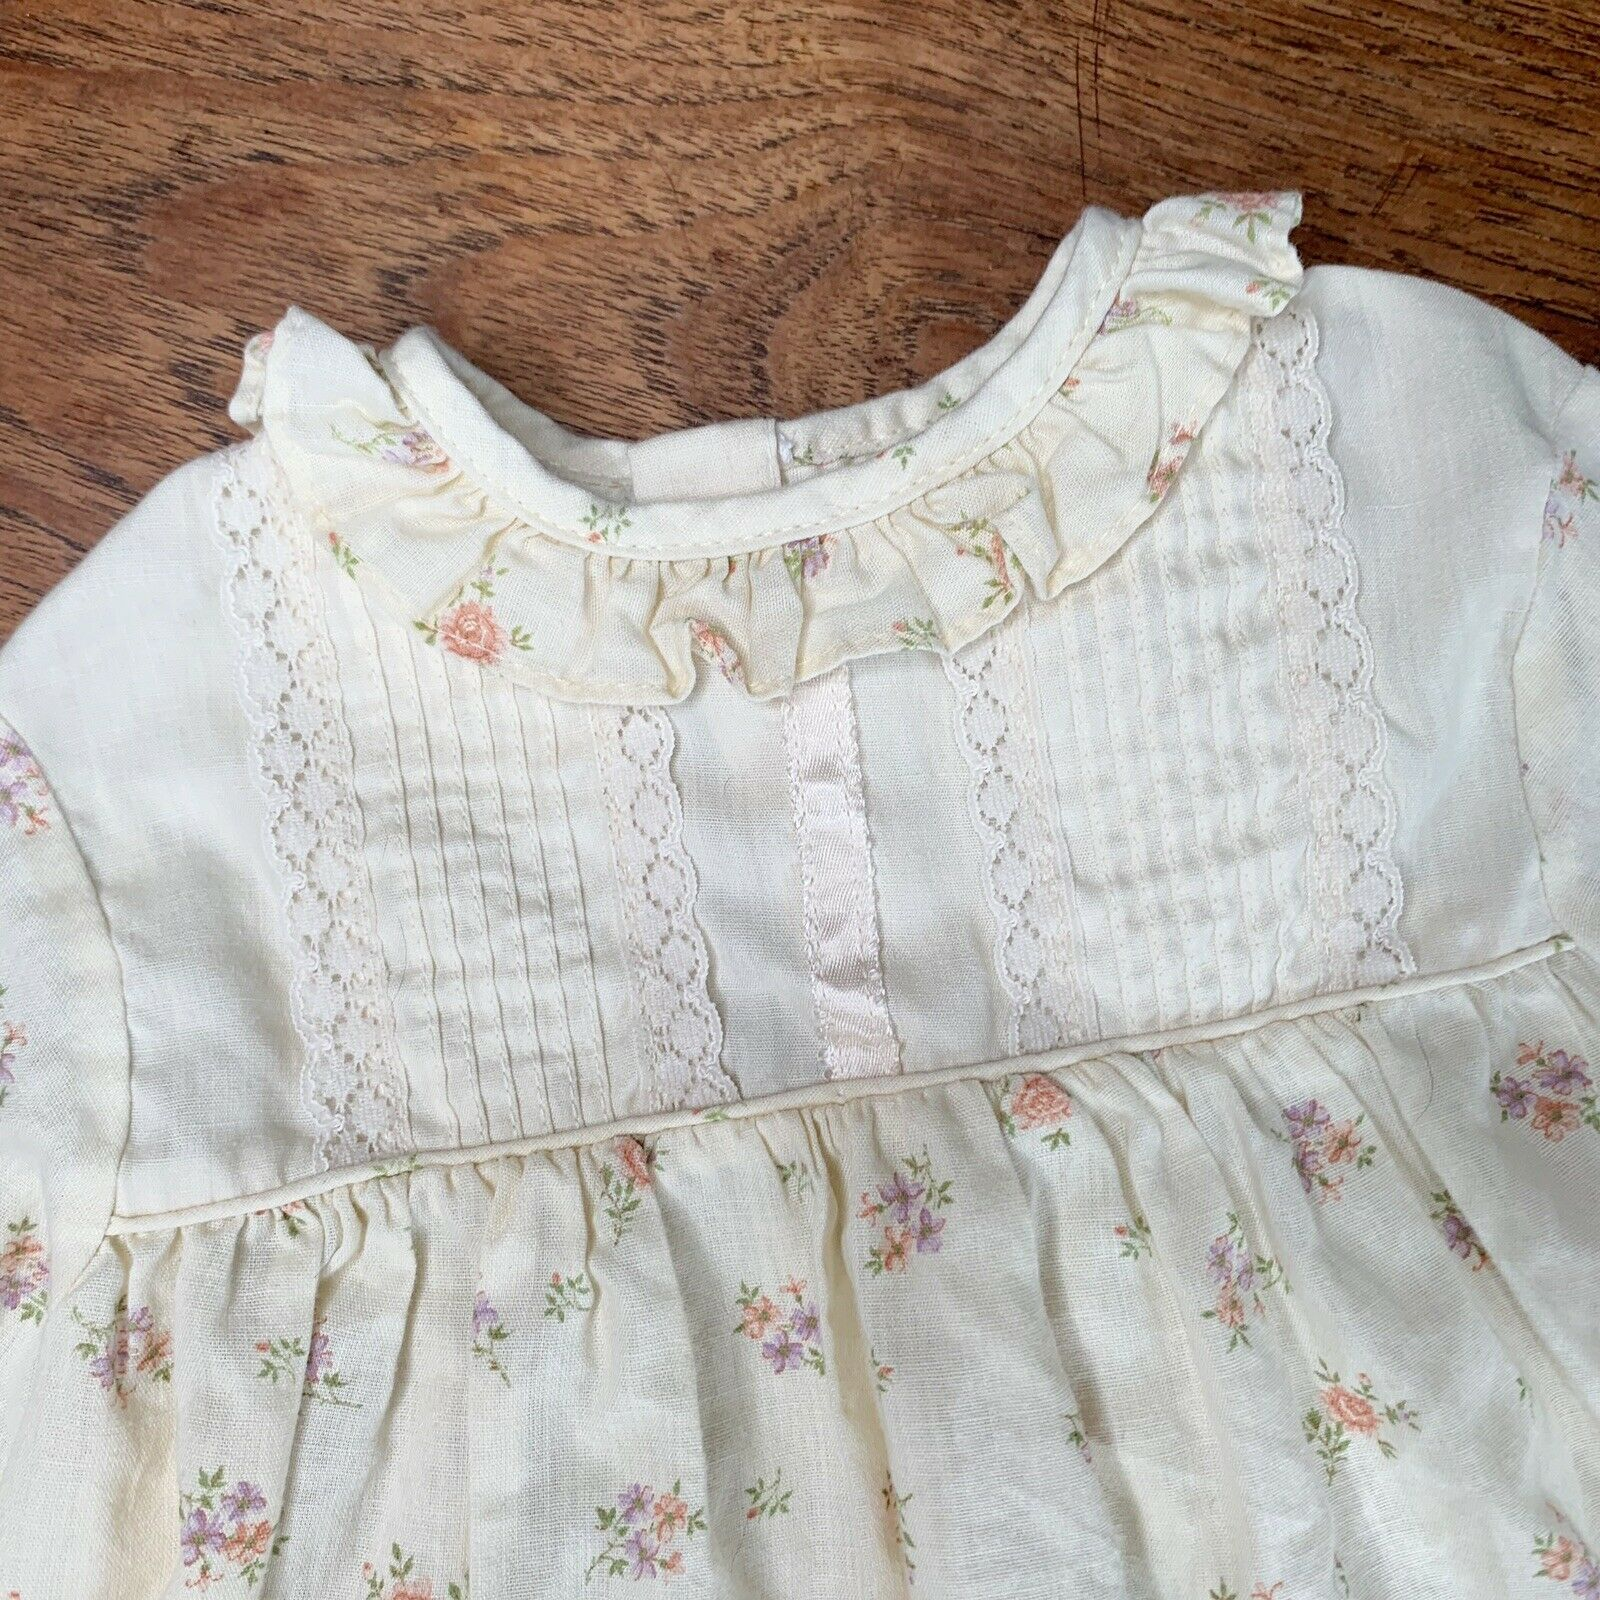 Vintage Girls 3T Tiered Prairie Dress Floral Lace… - image 2